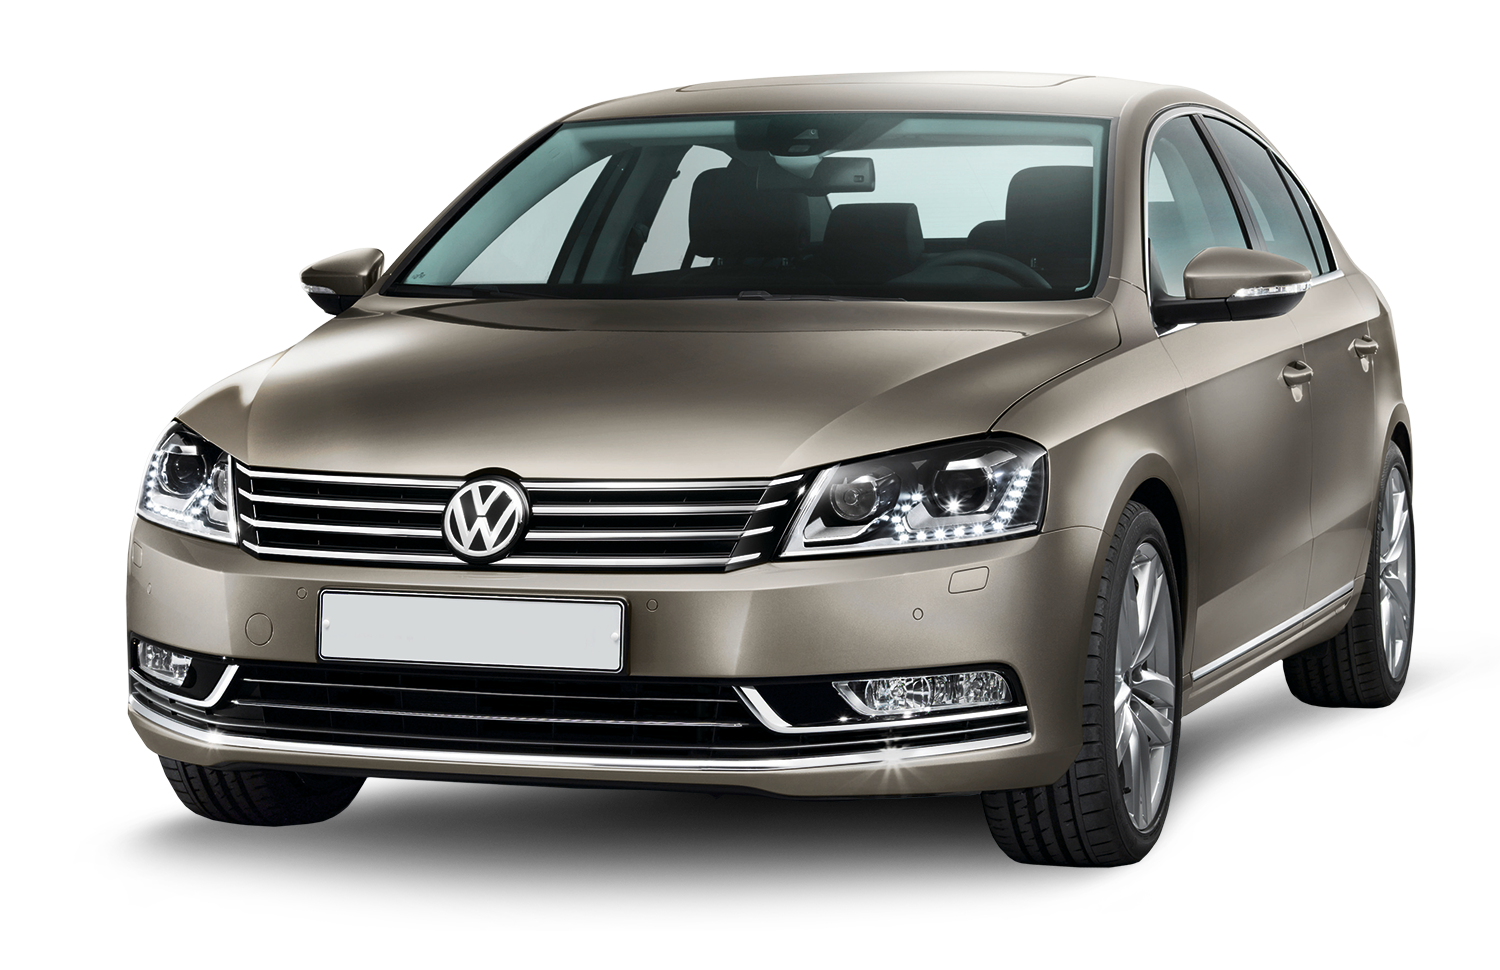 Volkswagen Png Image Car Rental Deals Car Rental Volkswagen